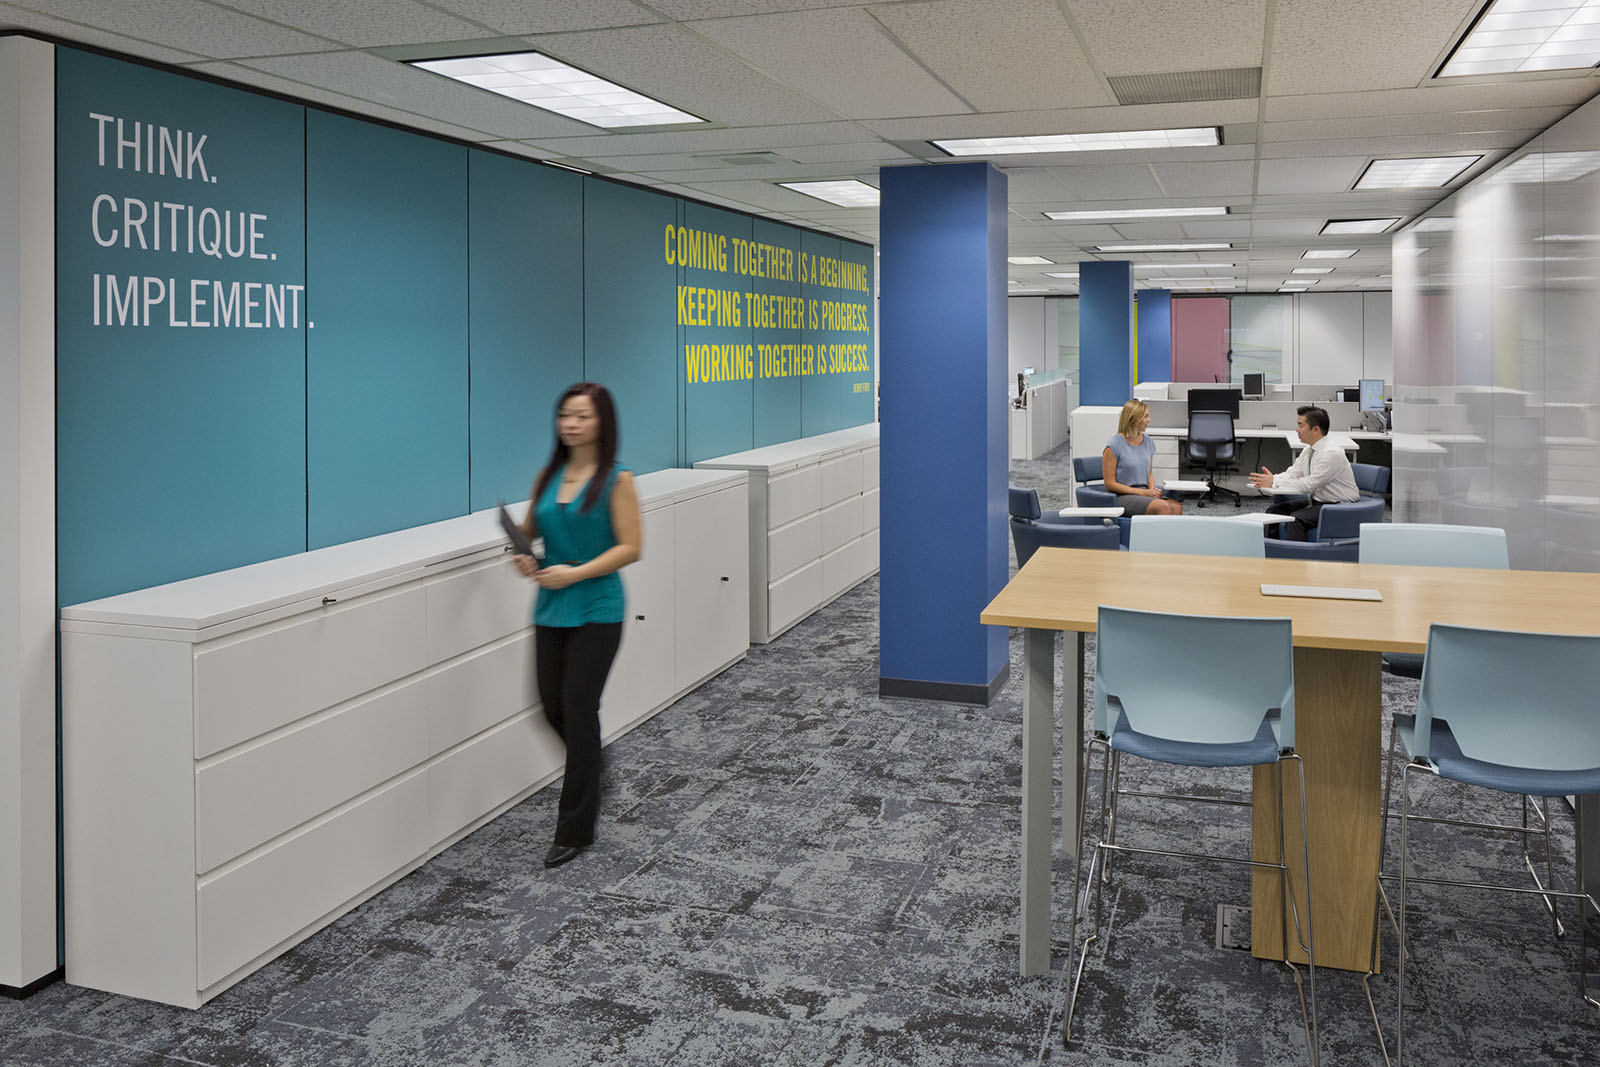 An office meeting area lined with filing cabinets, with a female figure walking towards camera